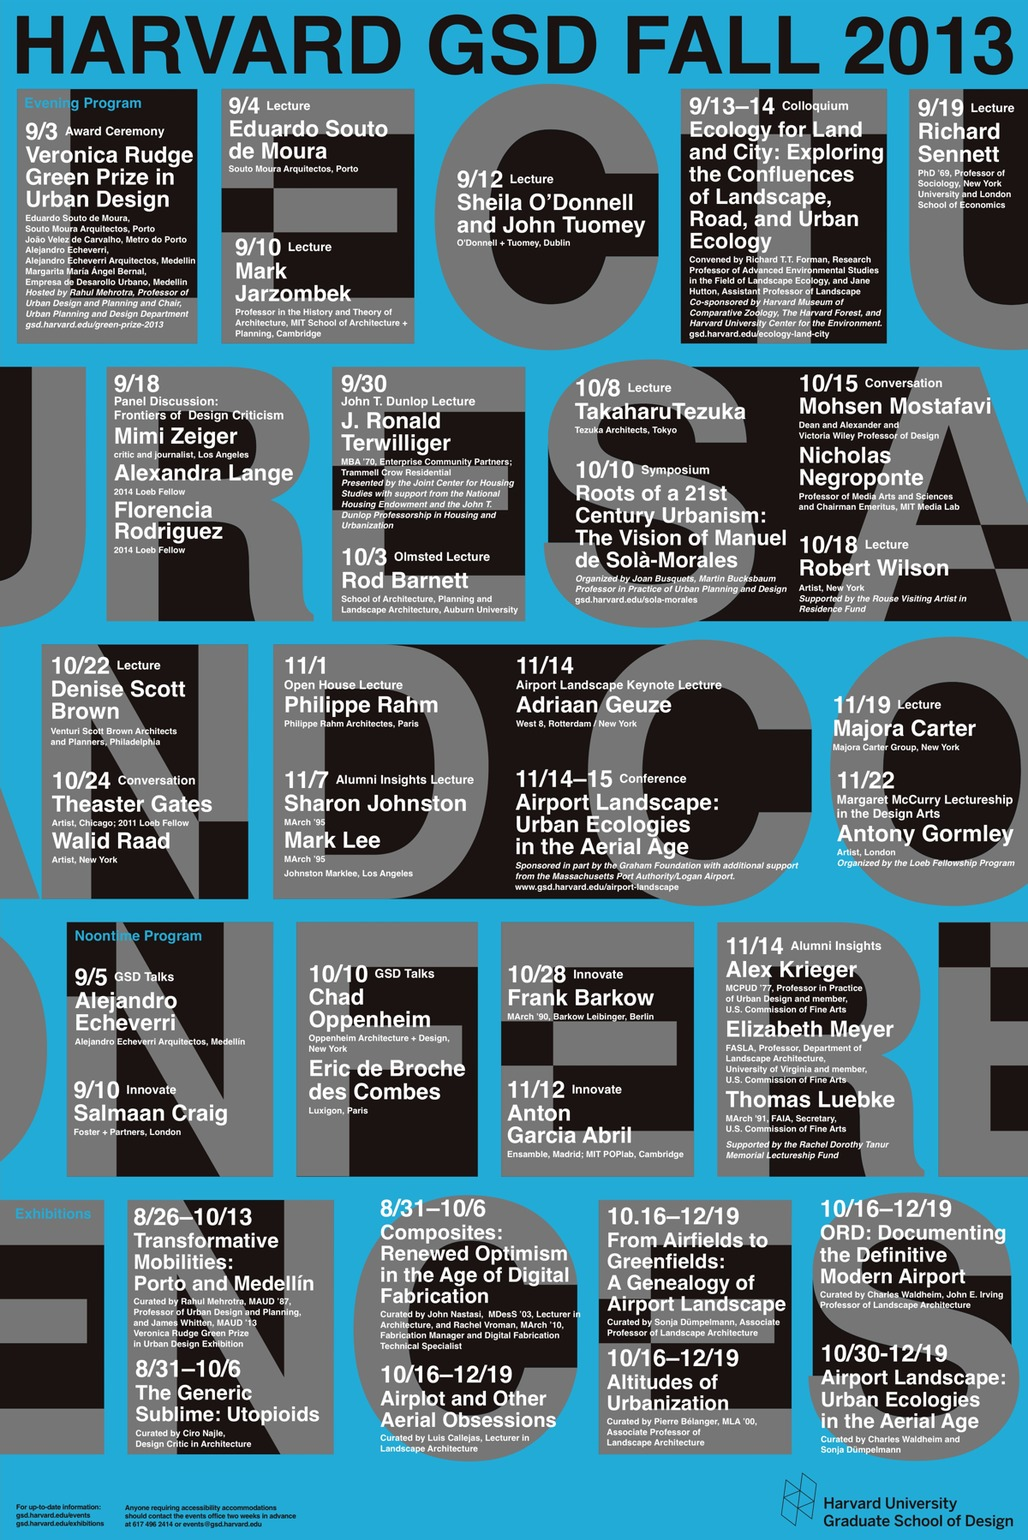 Poster for Harvard Graduate School of Designs Fall 2013 Lectures and Conferences Series. Image from gsd.harvard.edu.